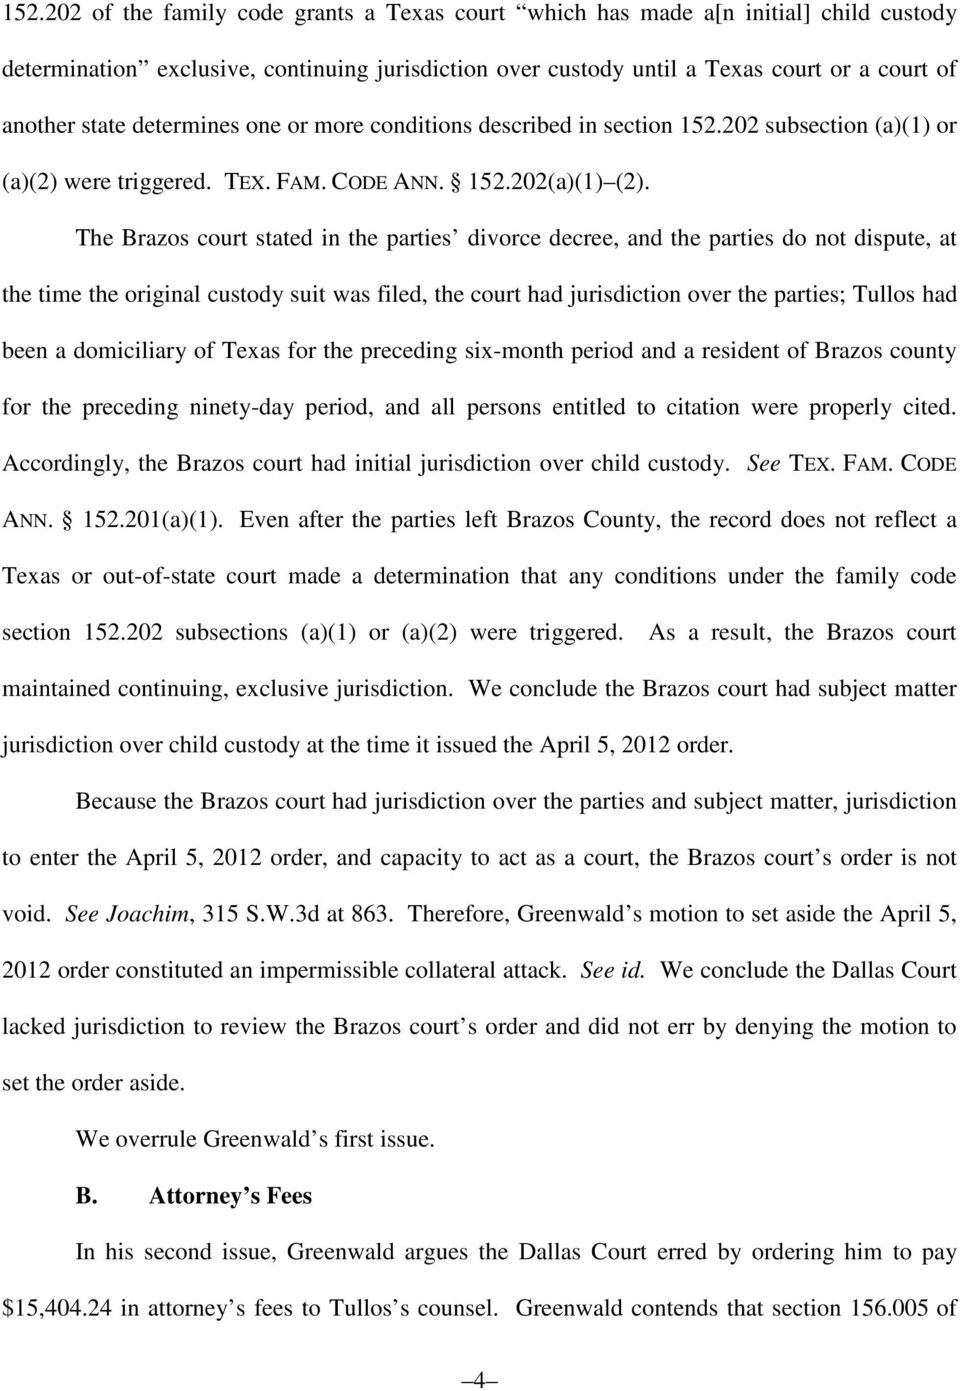 The Brazos court stated in the parties divorce decree, and the parties do not dispute, at the time the original custody suit was filed, the court had jurisdiction over the parties; Tullos had been a